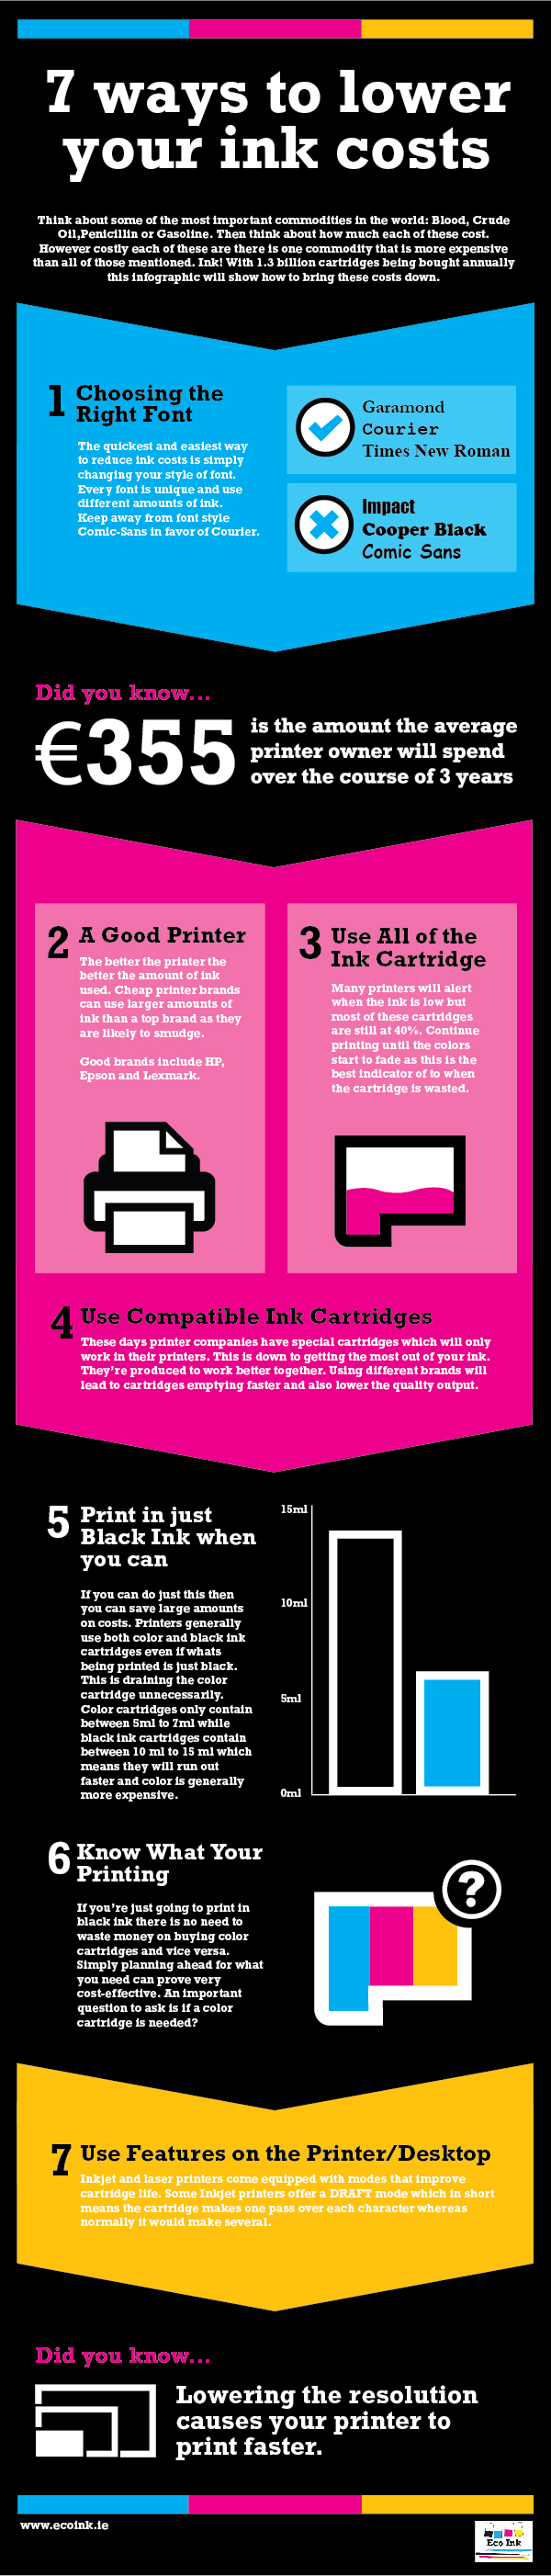 Reduce Your Ink Costs- An Infographic - Image 1